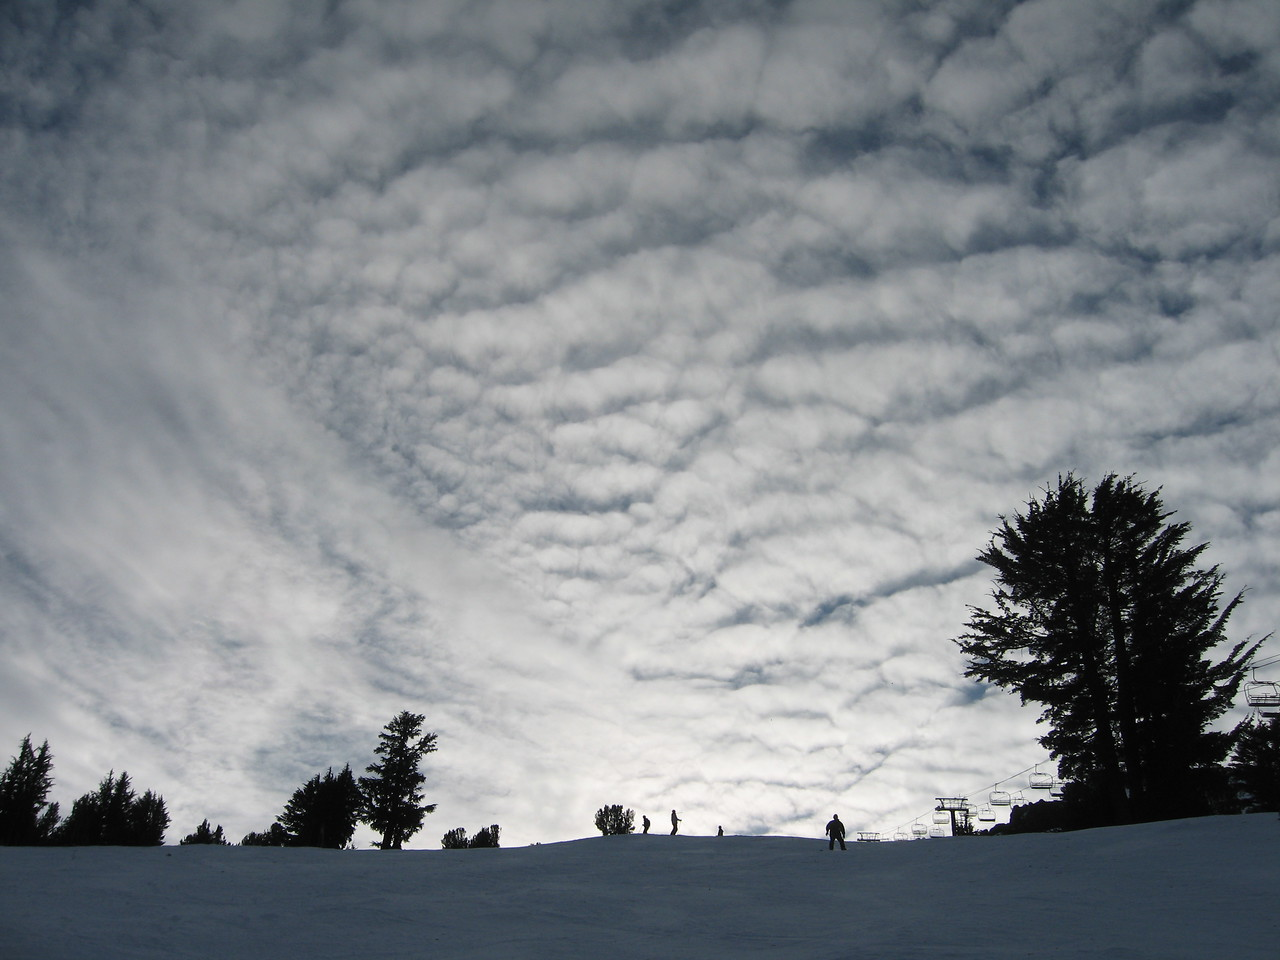 The weather wasn't all that for skiing, but it made for some cool pics.